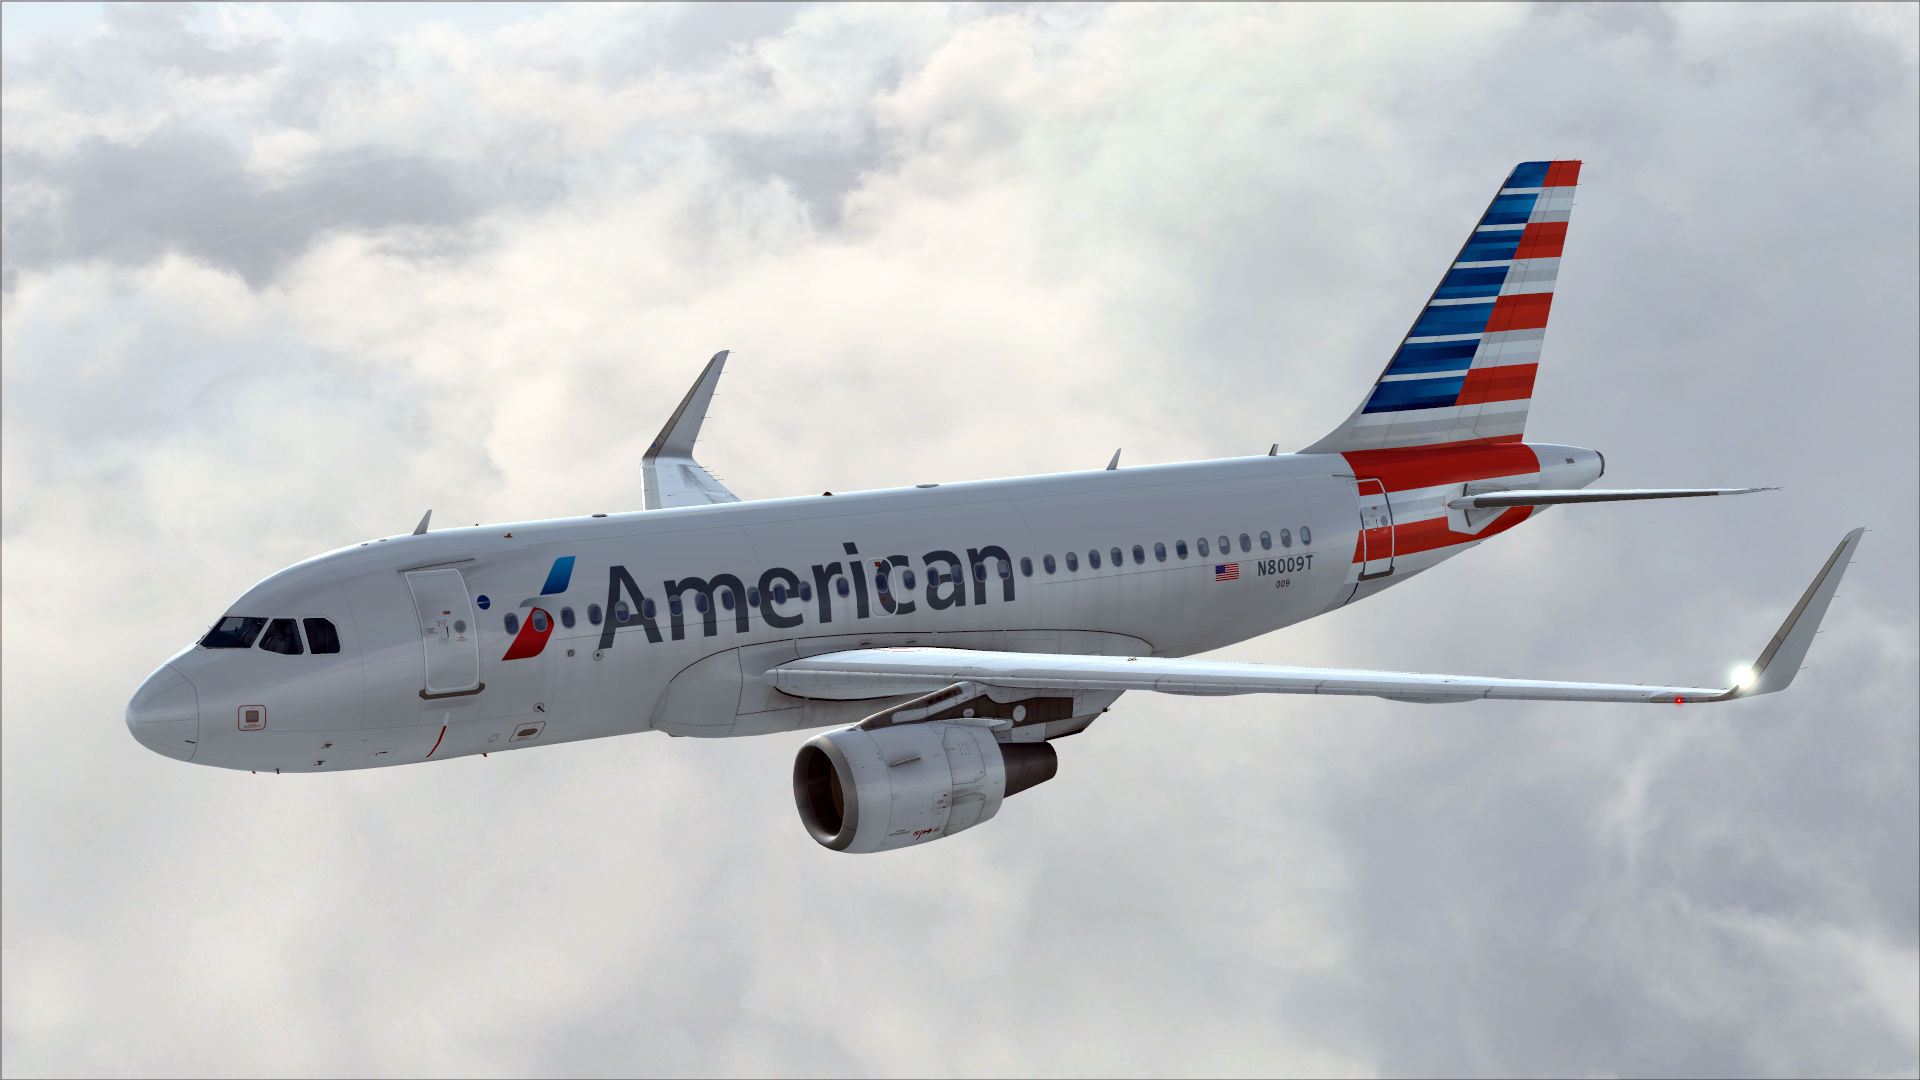 American Airlines Wallpapers 1145